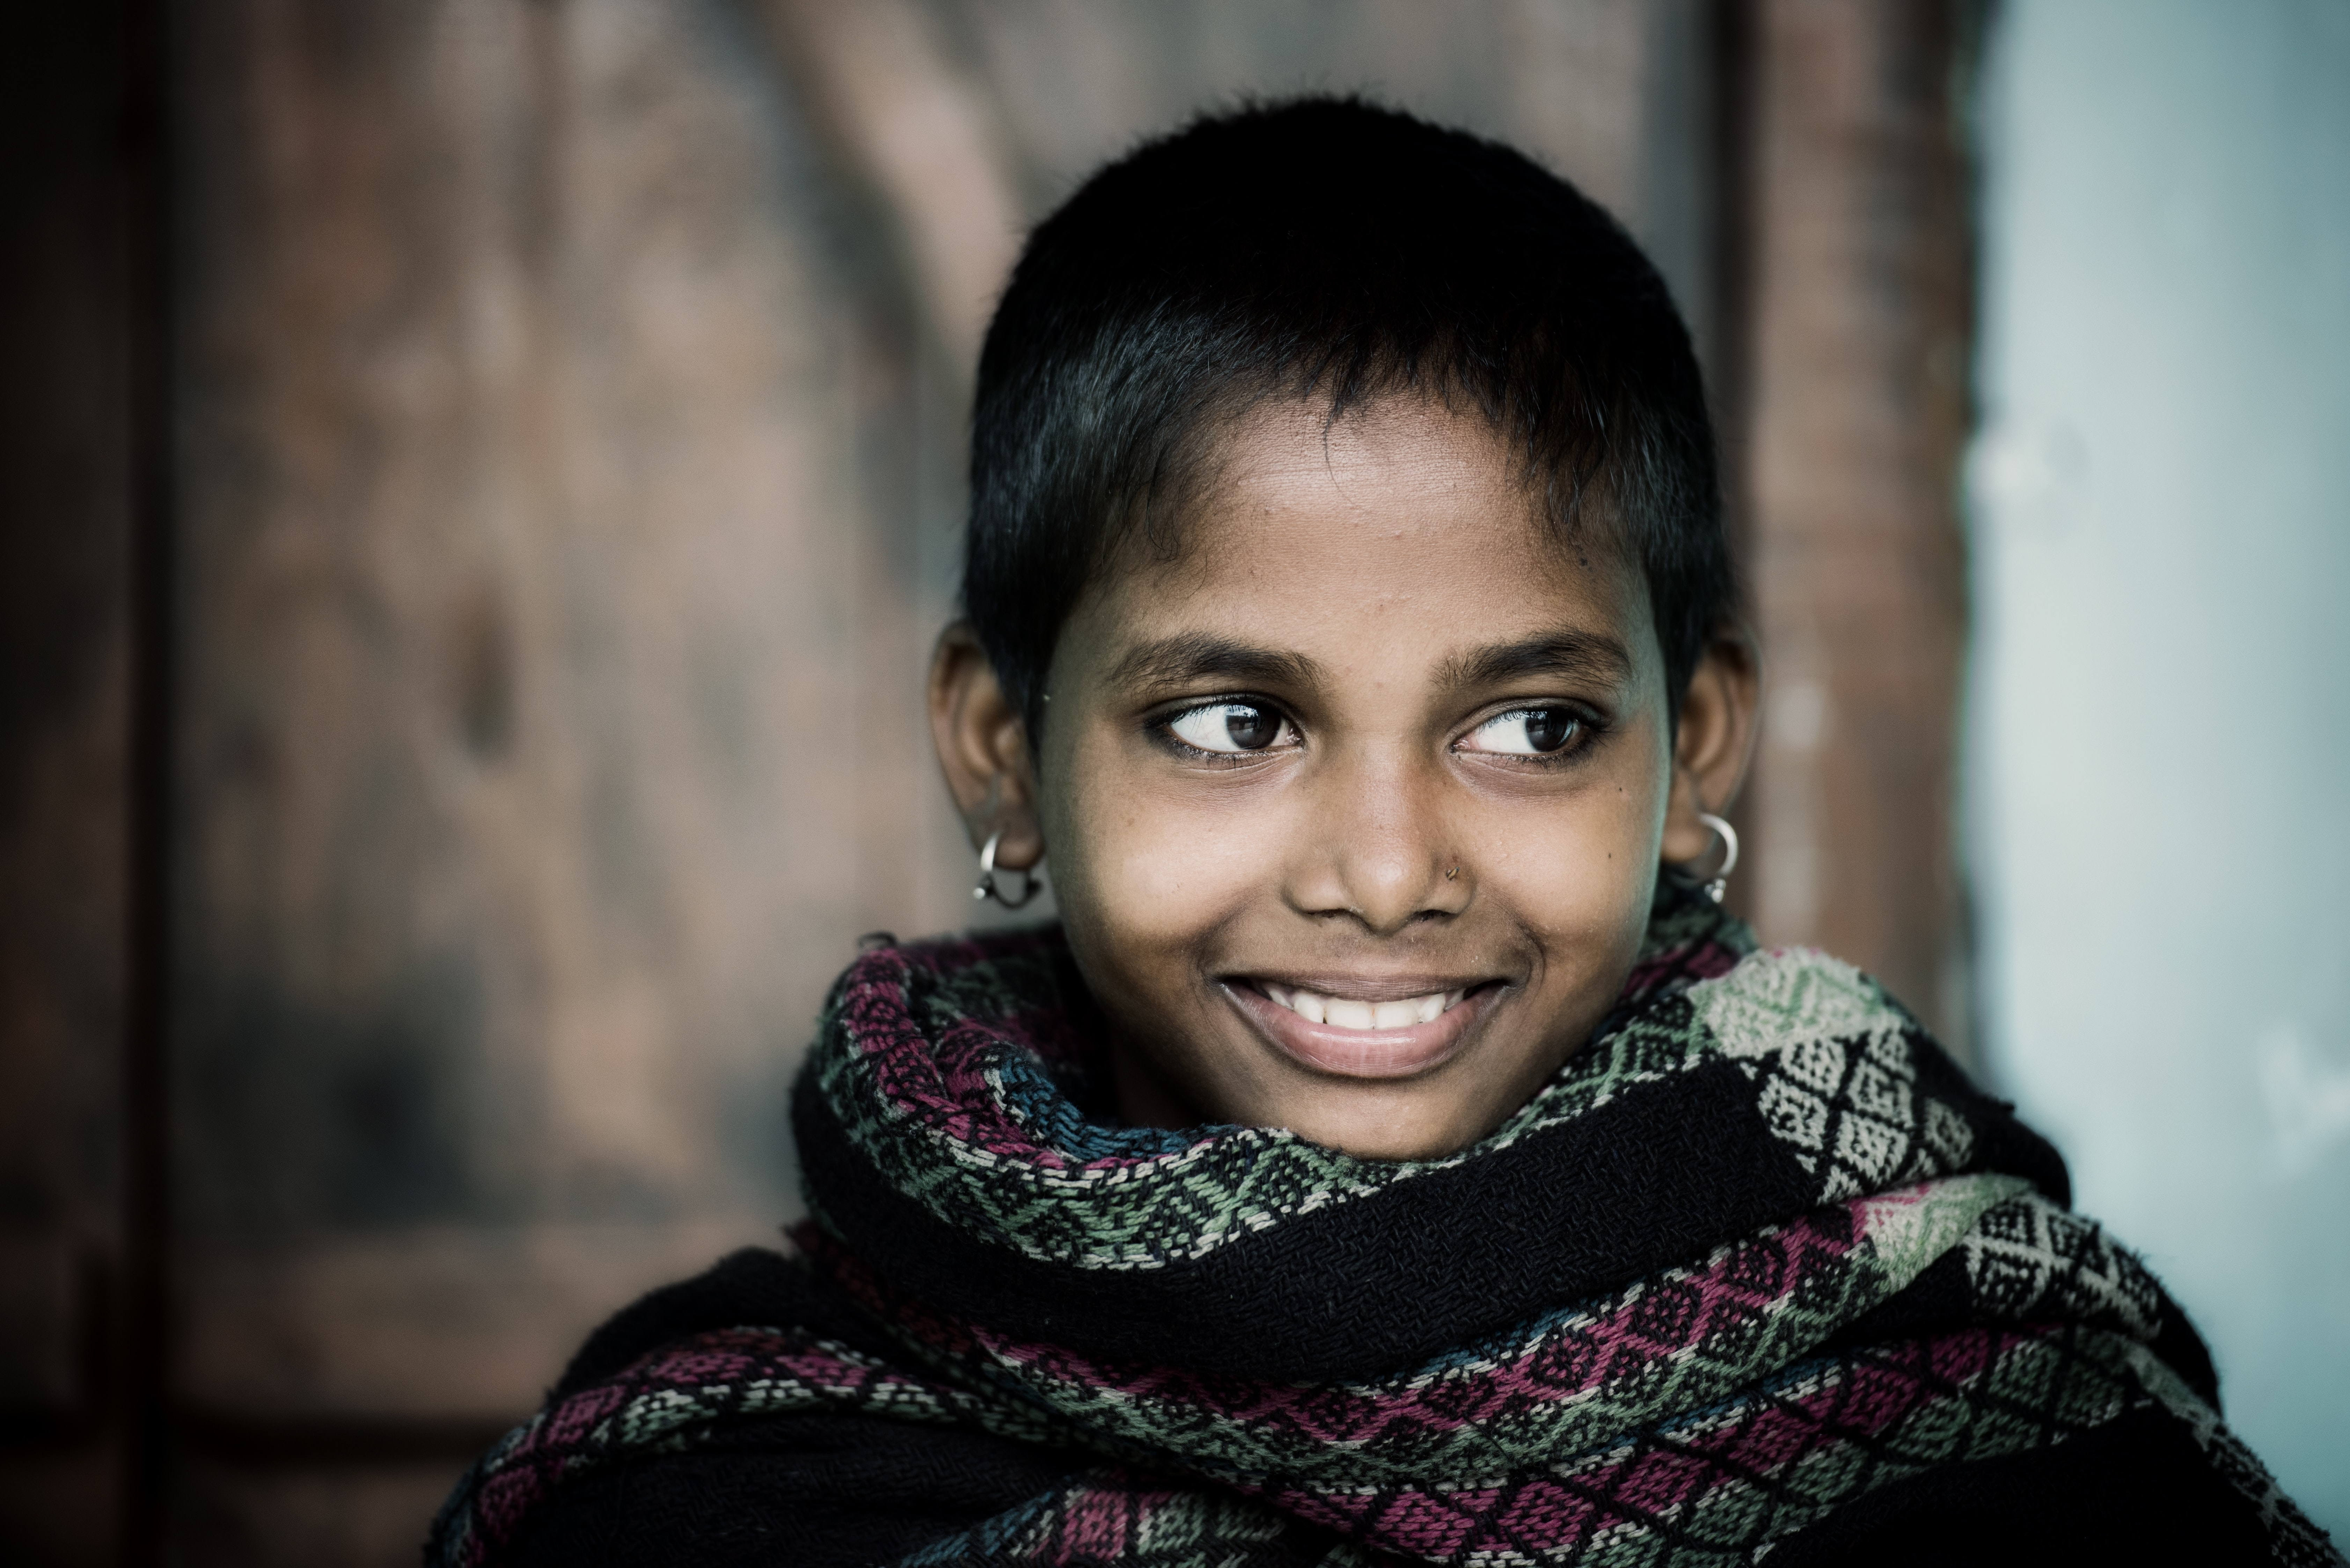 selective focus photography of girl while smiling